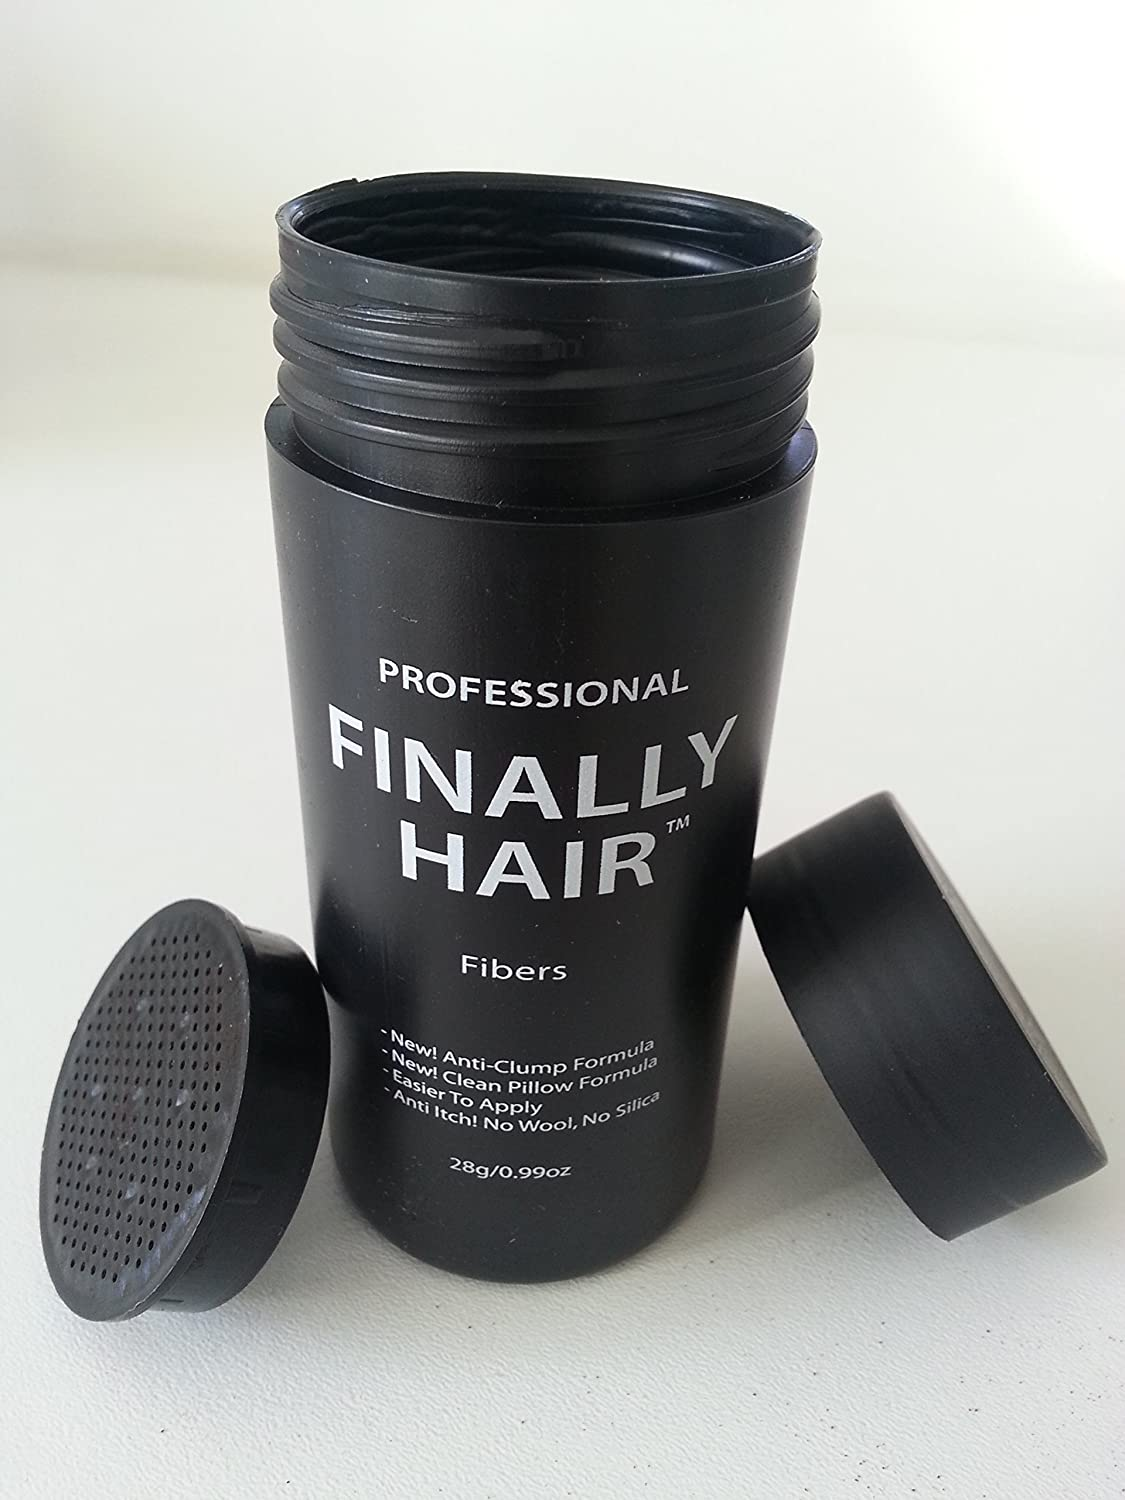 Finally Hair Hair Fiber Applicator Bottle For Use With Refill 100 Grams For Hair Loss Concealing by Finally Hair (Empty Applicator Bottle) Finally Hair Corporation 100g Refill